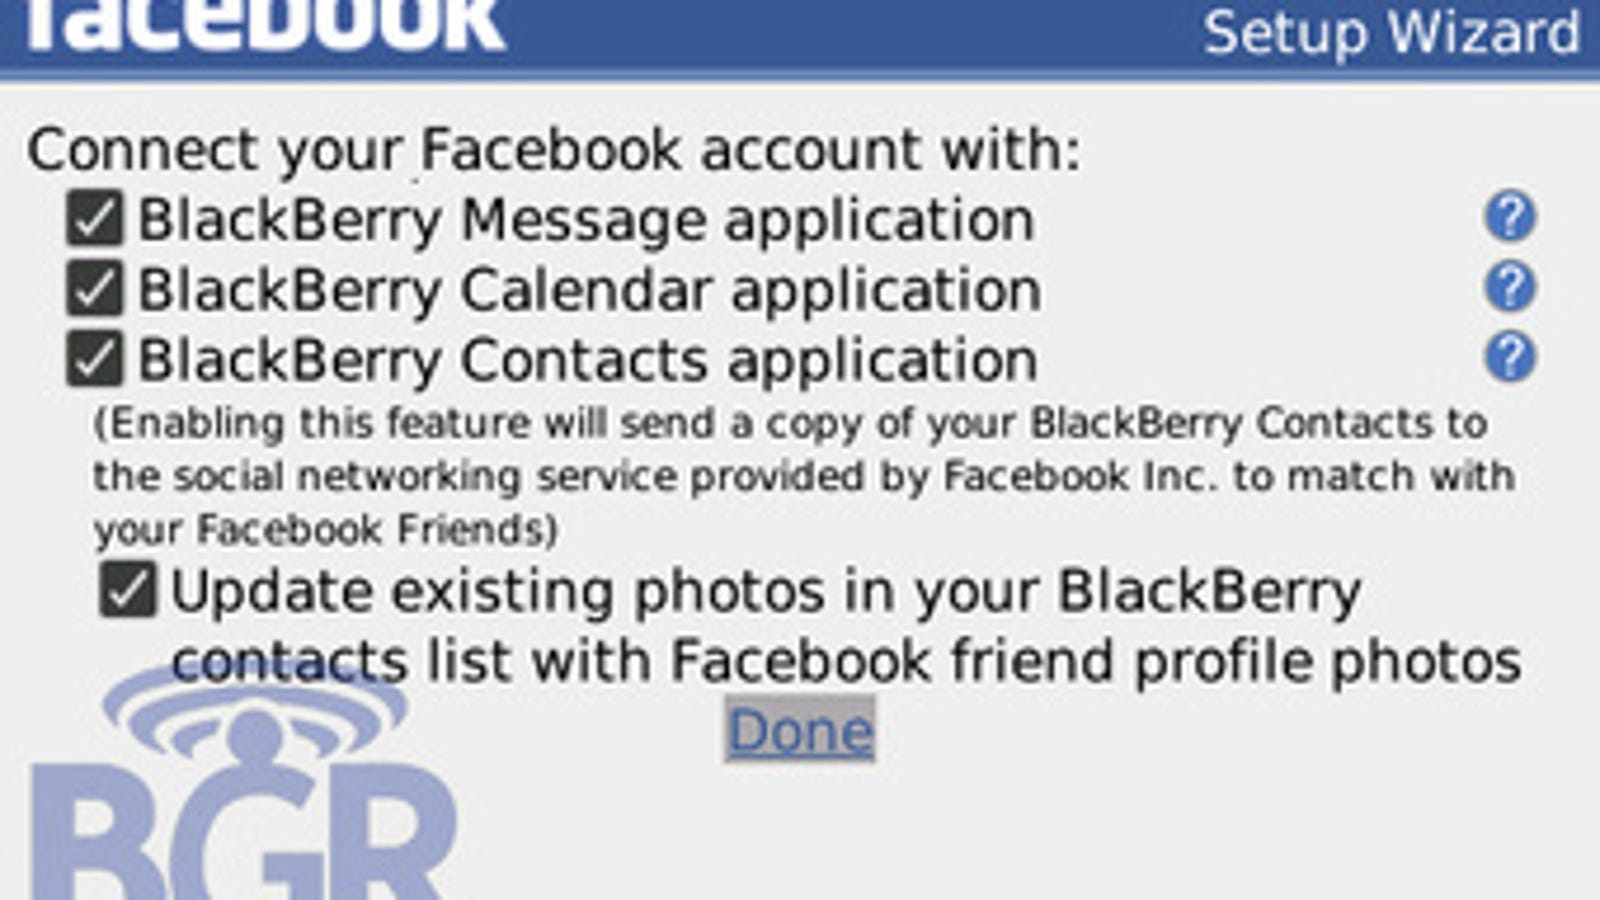 Facebook 1 5 App Offers BlackBerry Message, Contact and